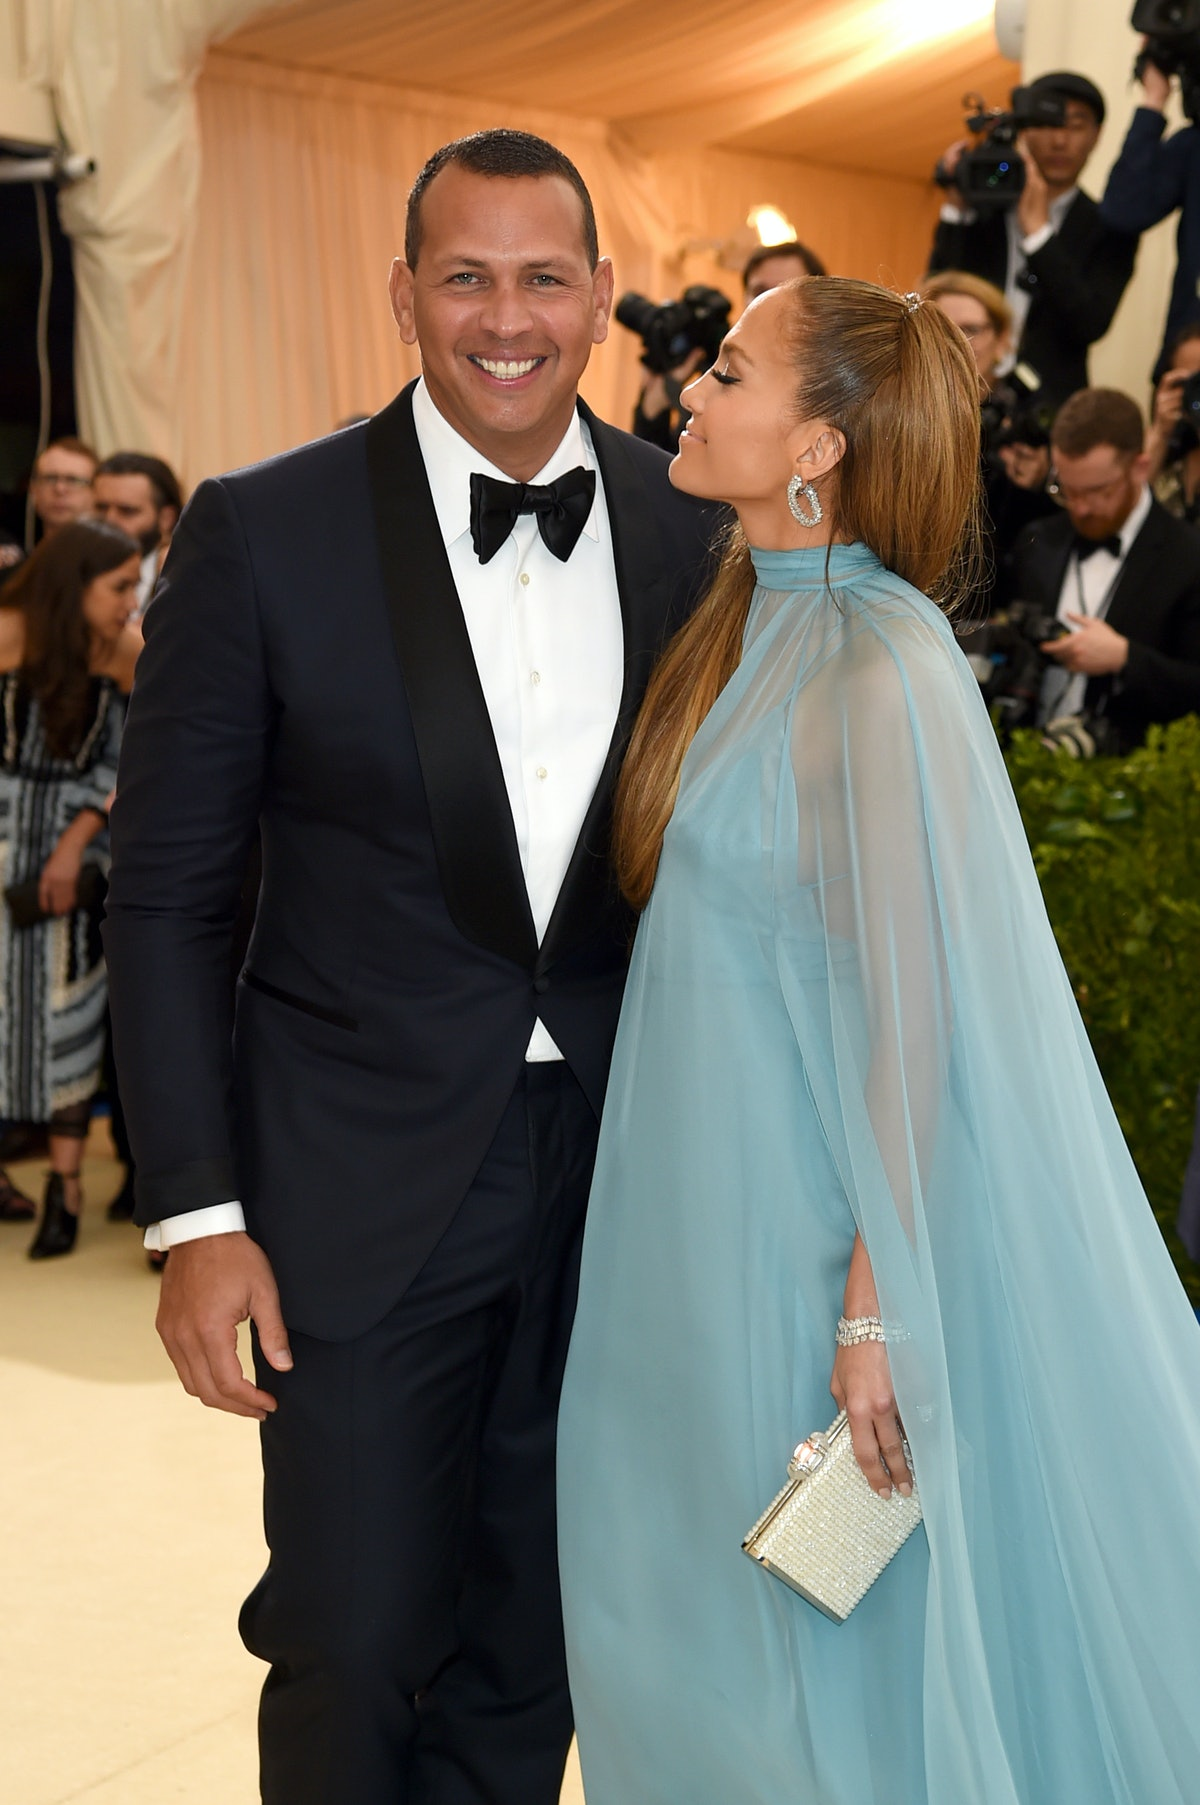 """NEW YORK, NY - MAY 01:  Alex Rodriguez and Jennifer Lopez attend the """"Rei Kawakubo/Comme des Garcons: Art Of The In-Between"""" Costume Institute Gala at Metropolitan Museum of Art on May 1, 2017 in New York City.  (Photo by Jamie McCarthy/FilmMagic)"""